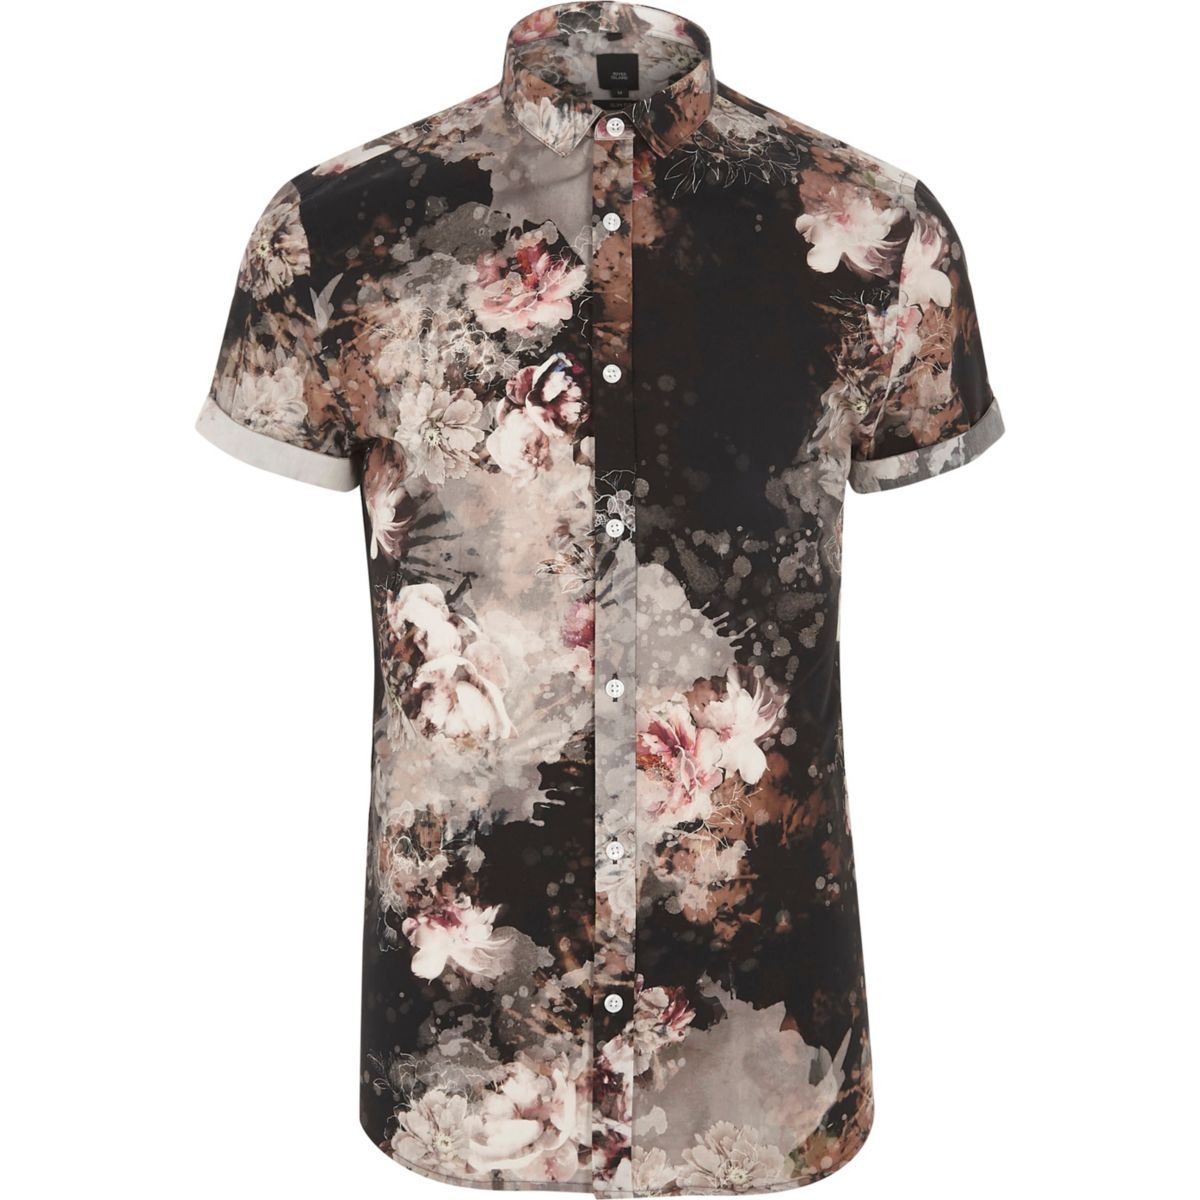 Black floral print slim fit shirt shirts sale men for Black floral print shirt